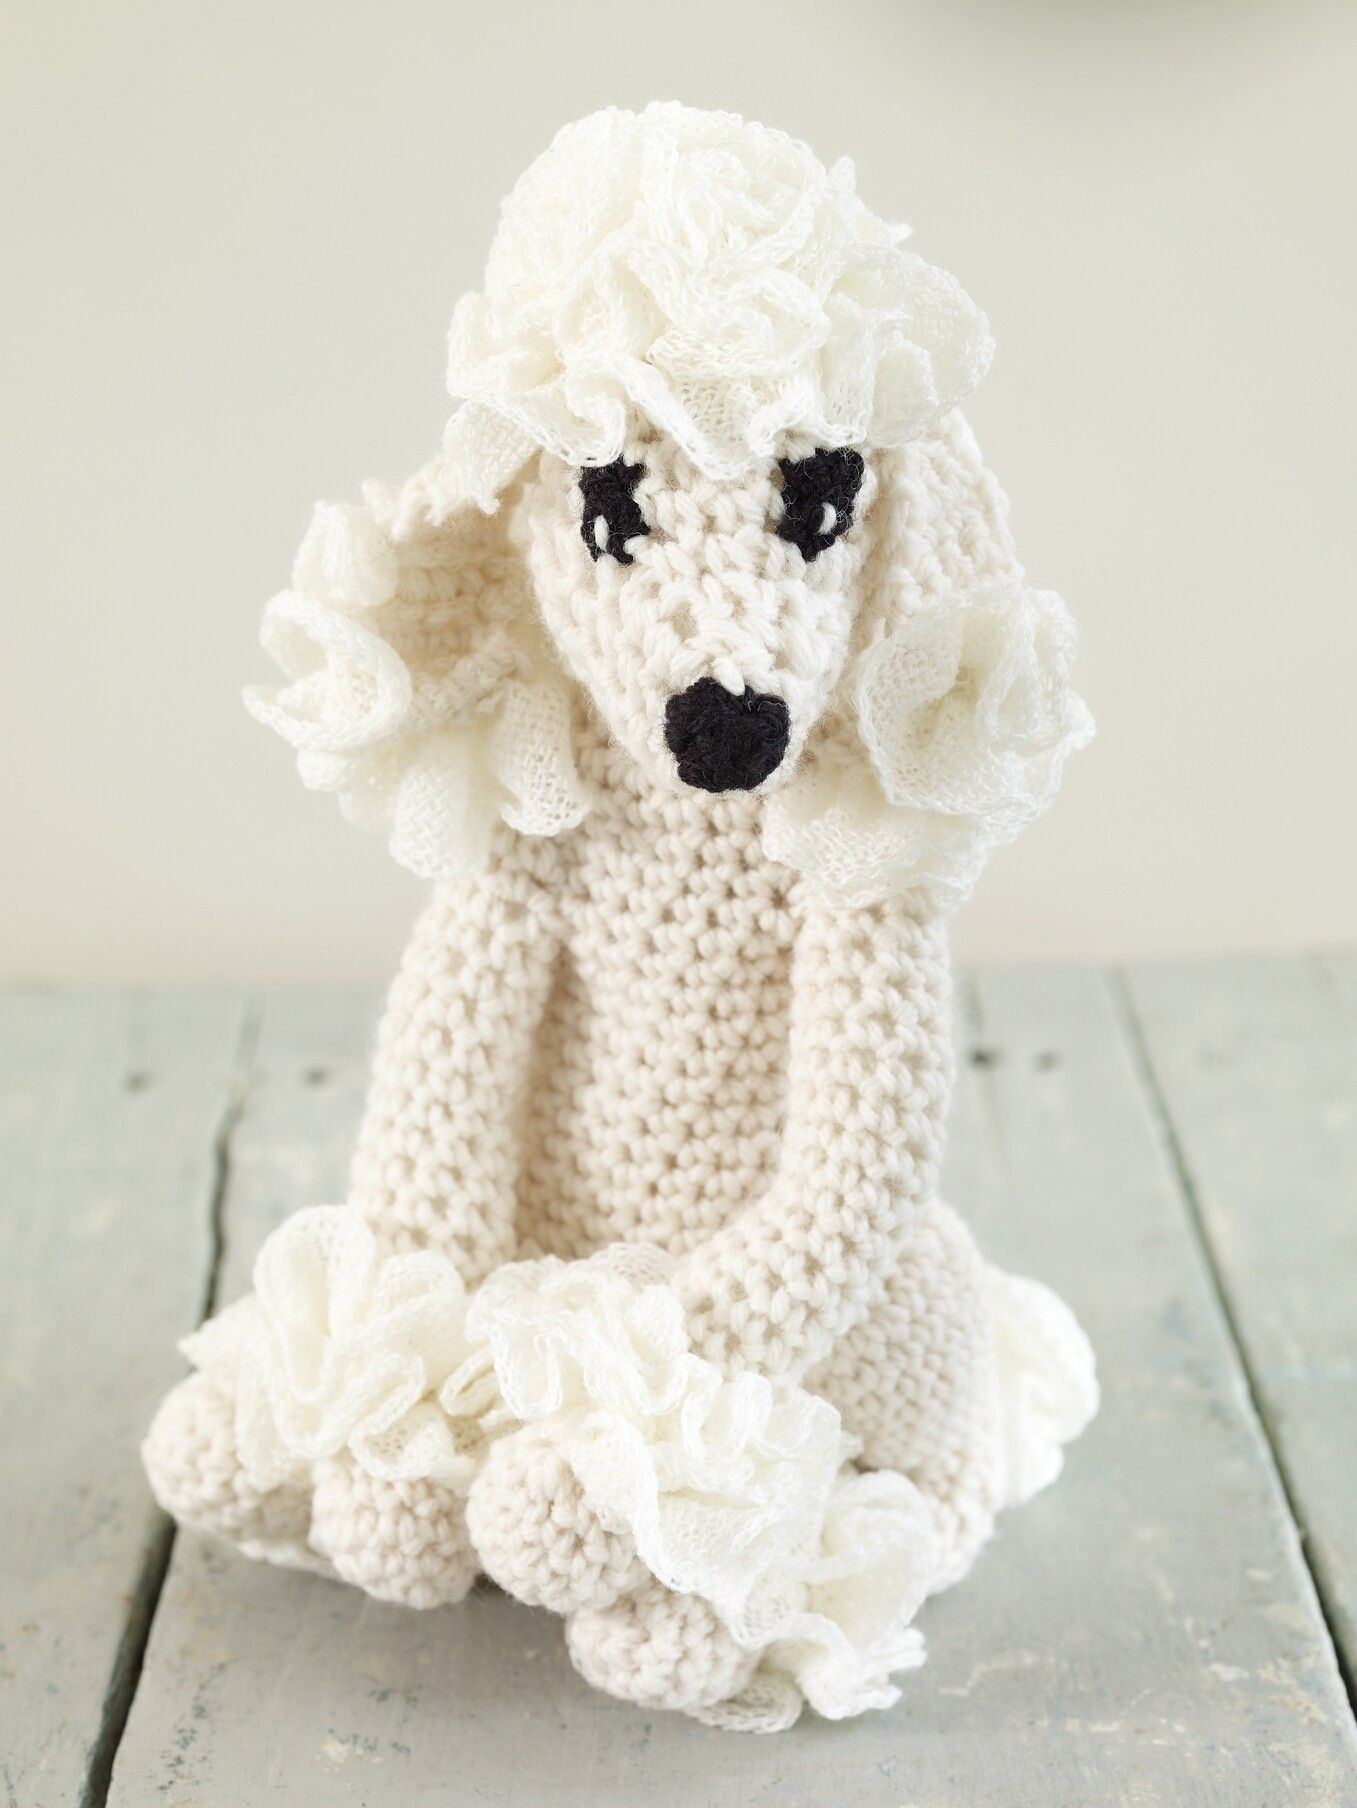 Poodle Princess Pattern (Crochet) | Projects to try | Pinterest